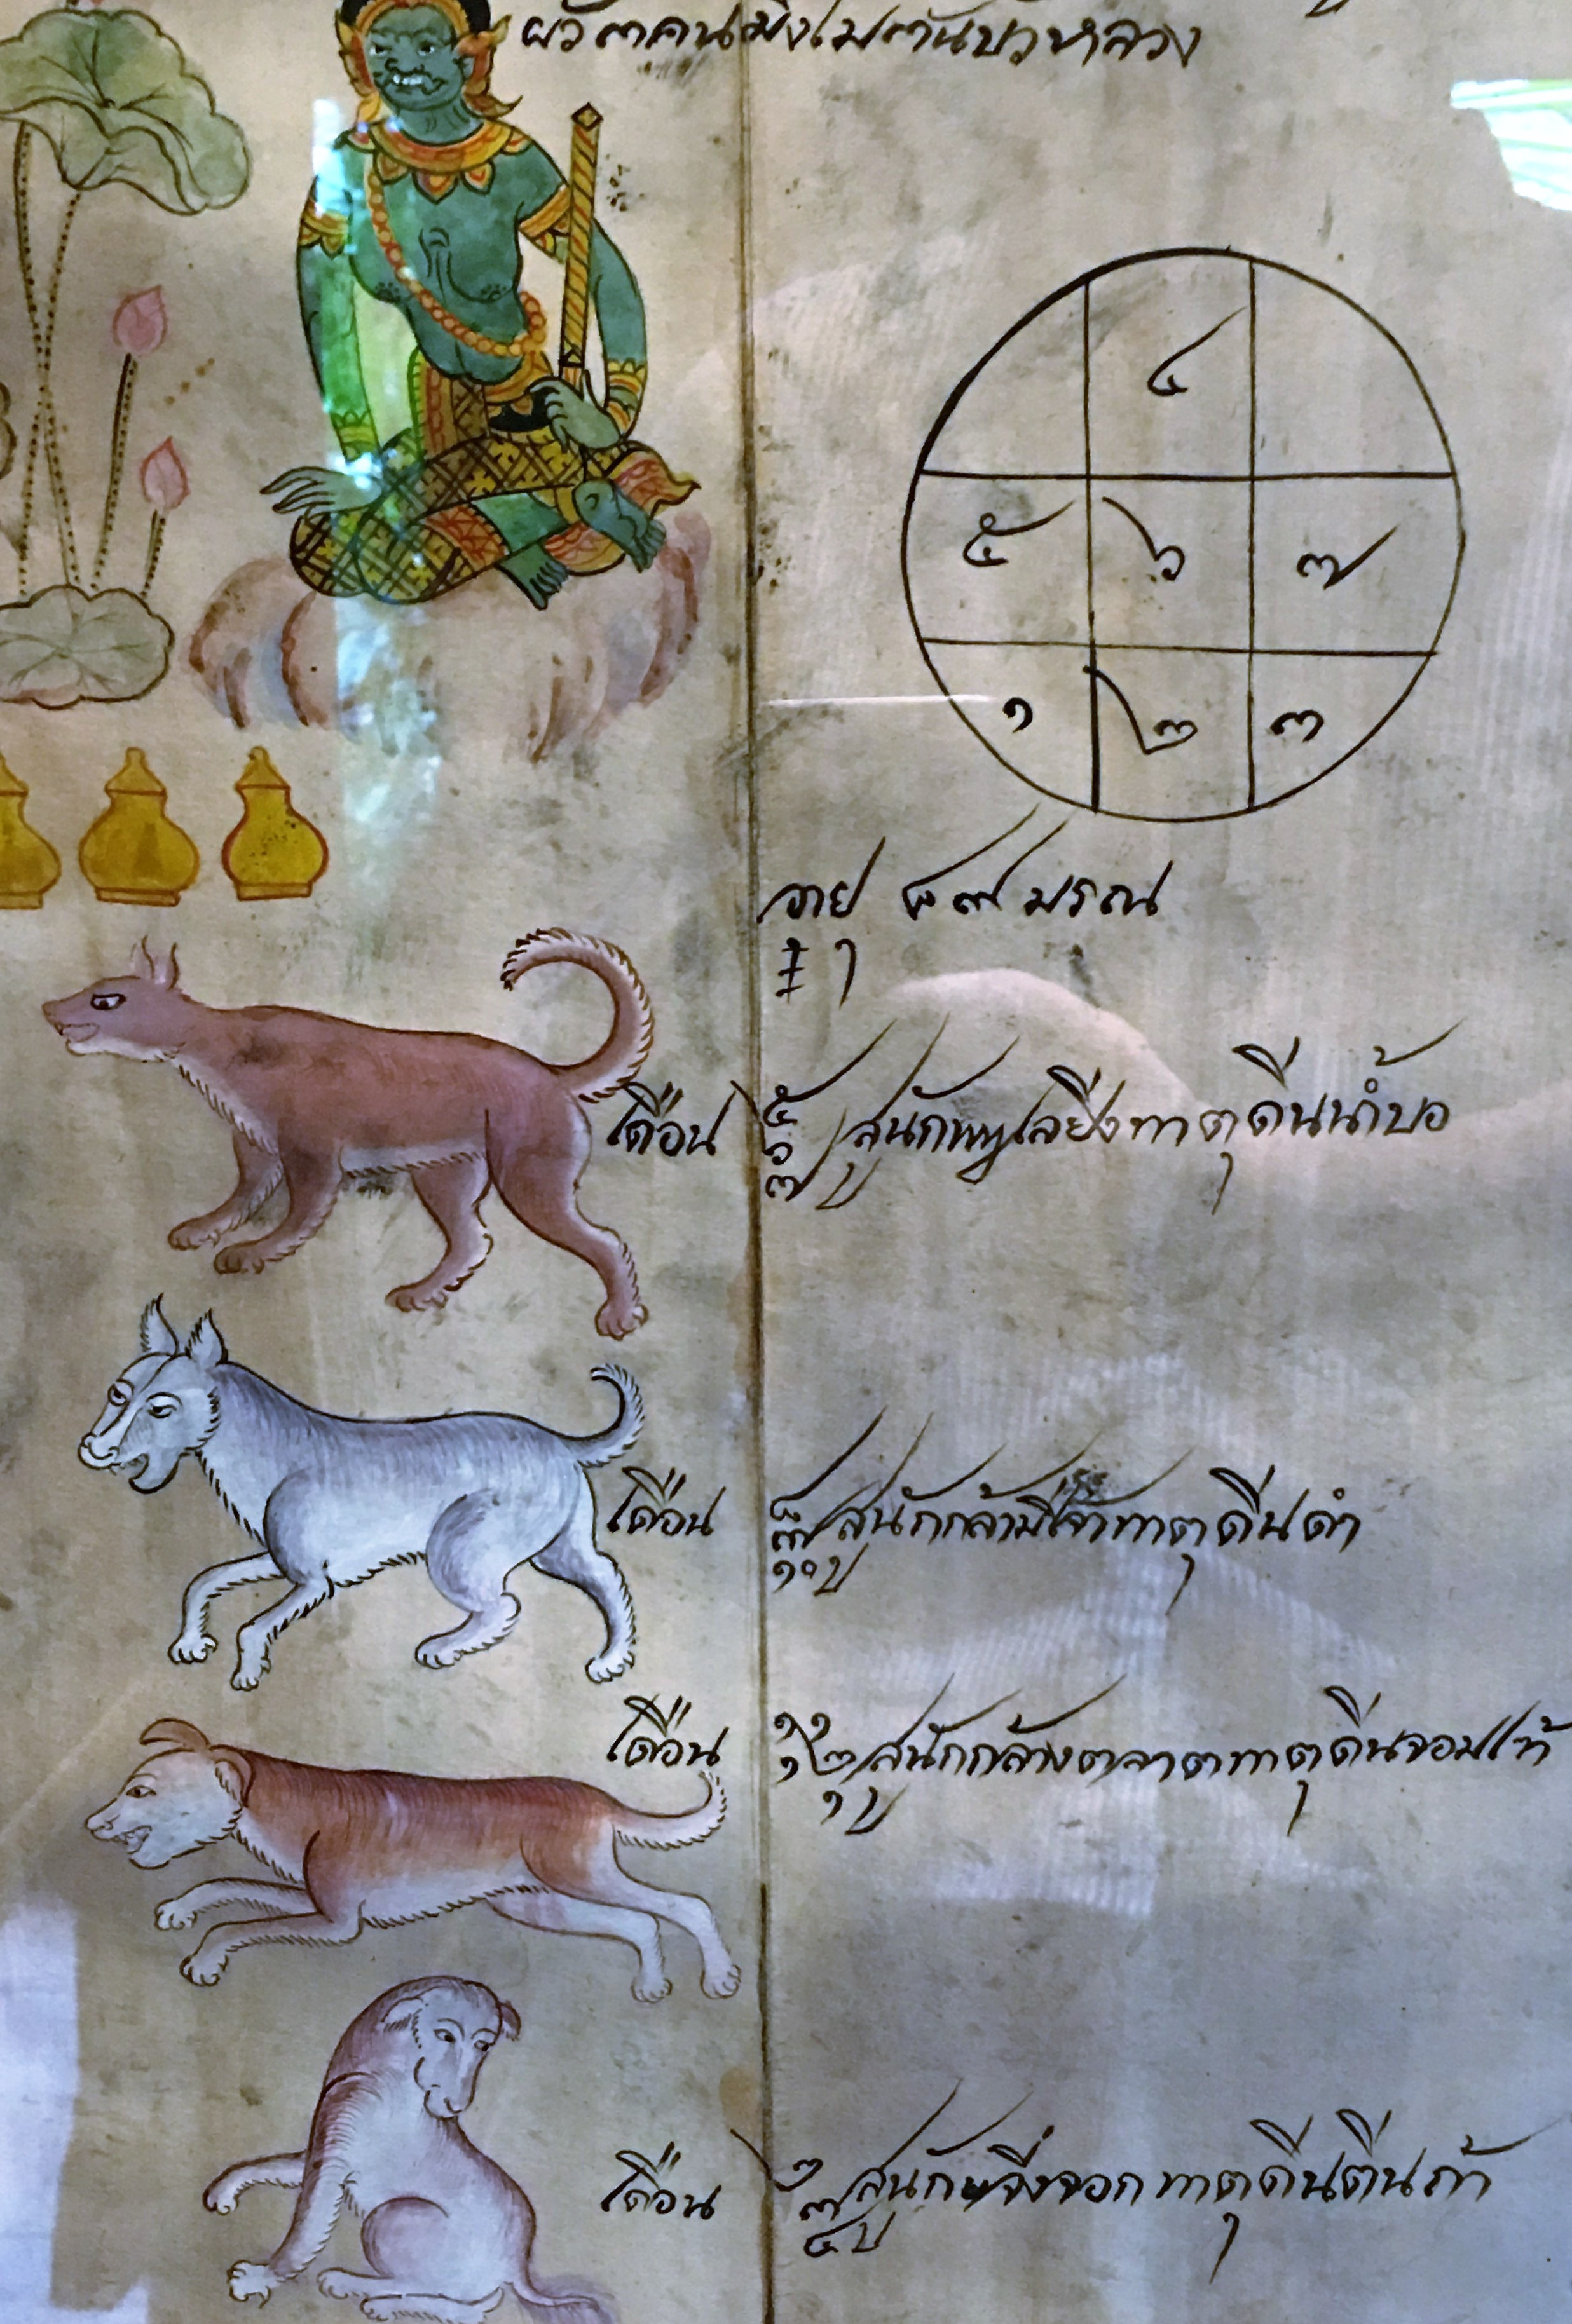 Astrology House Chart: Thai chinese astrology chart Jim Thompson Museum IMG 7230.jpg ,Chart